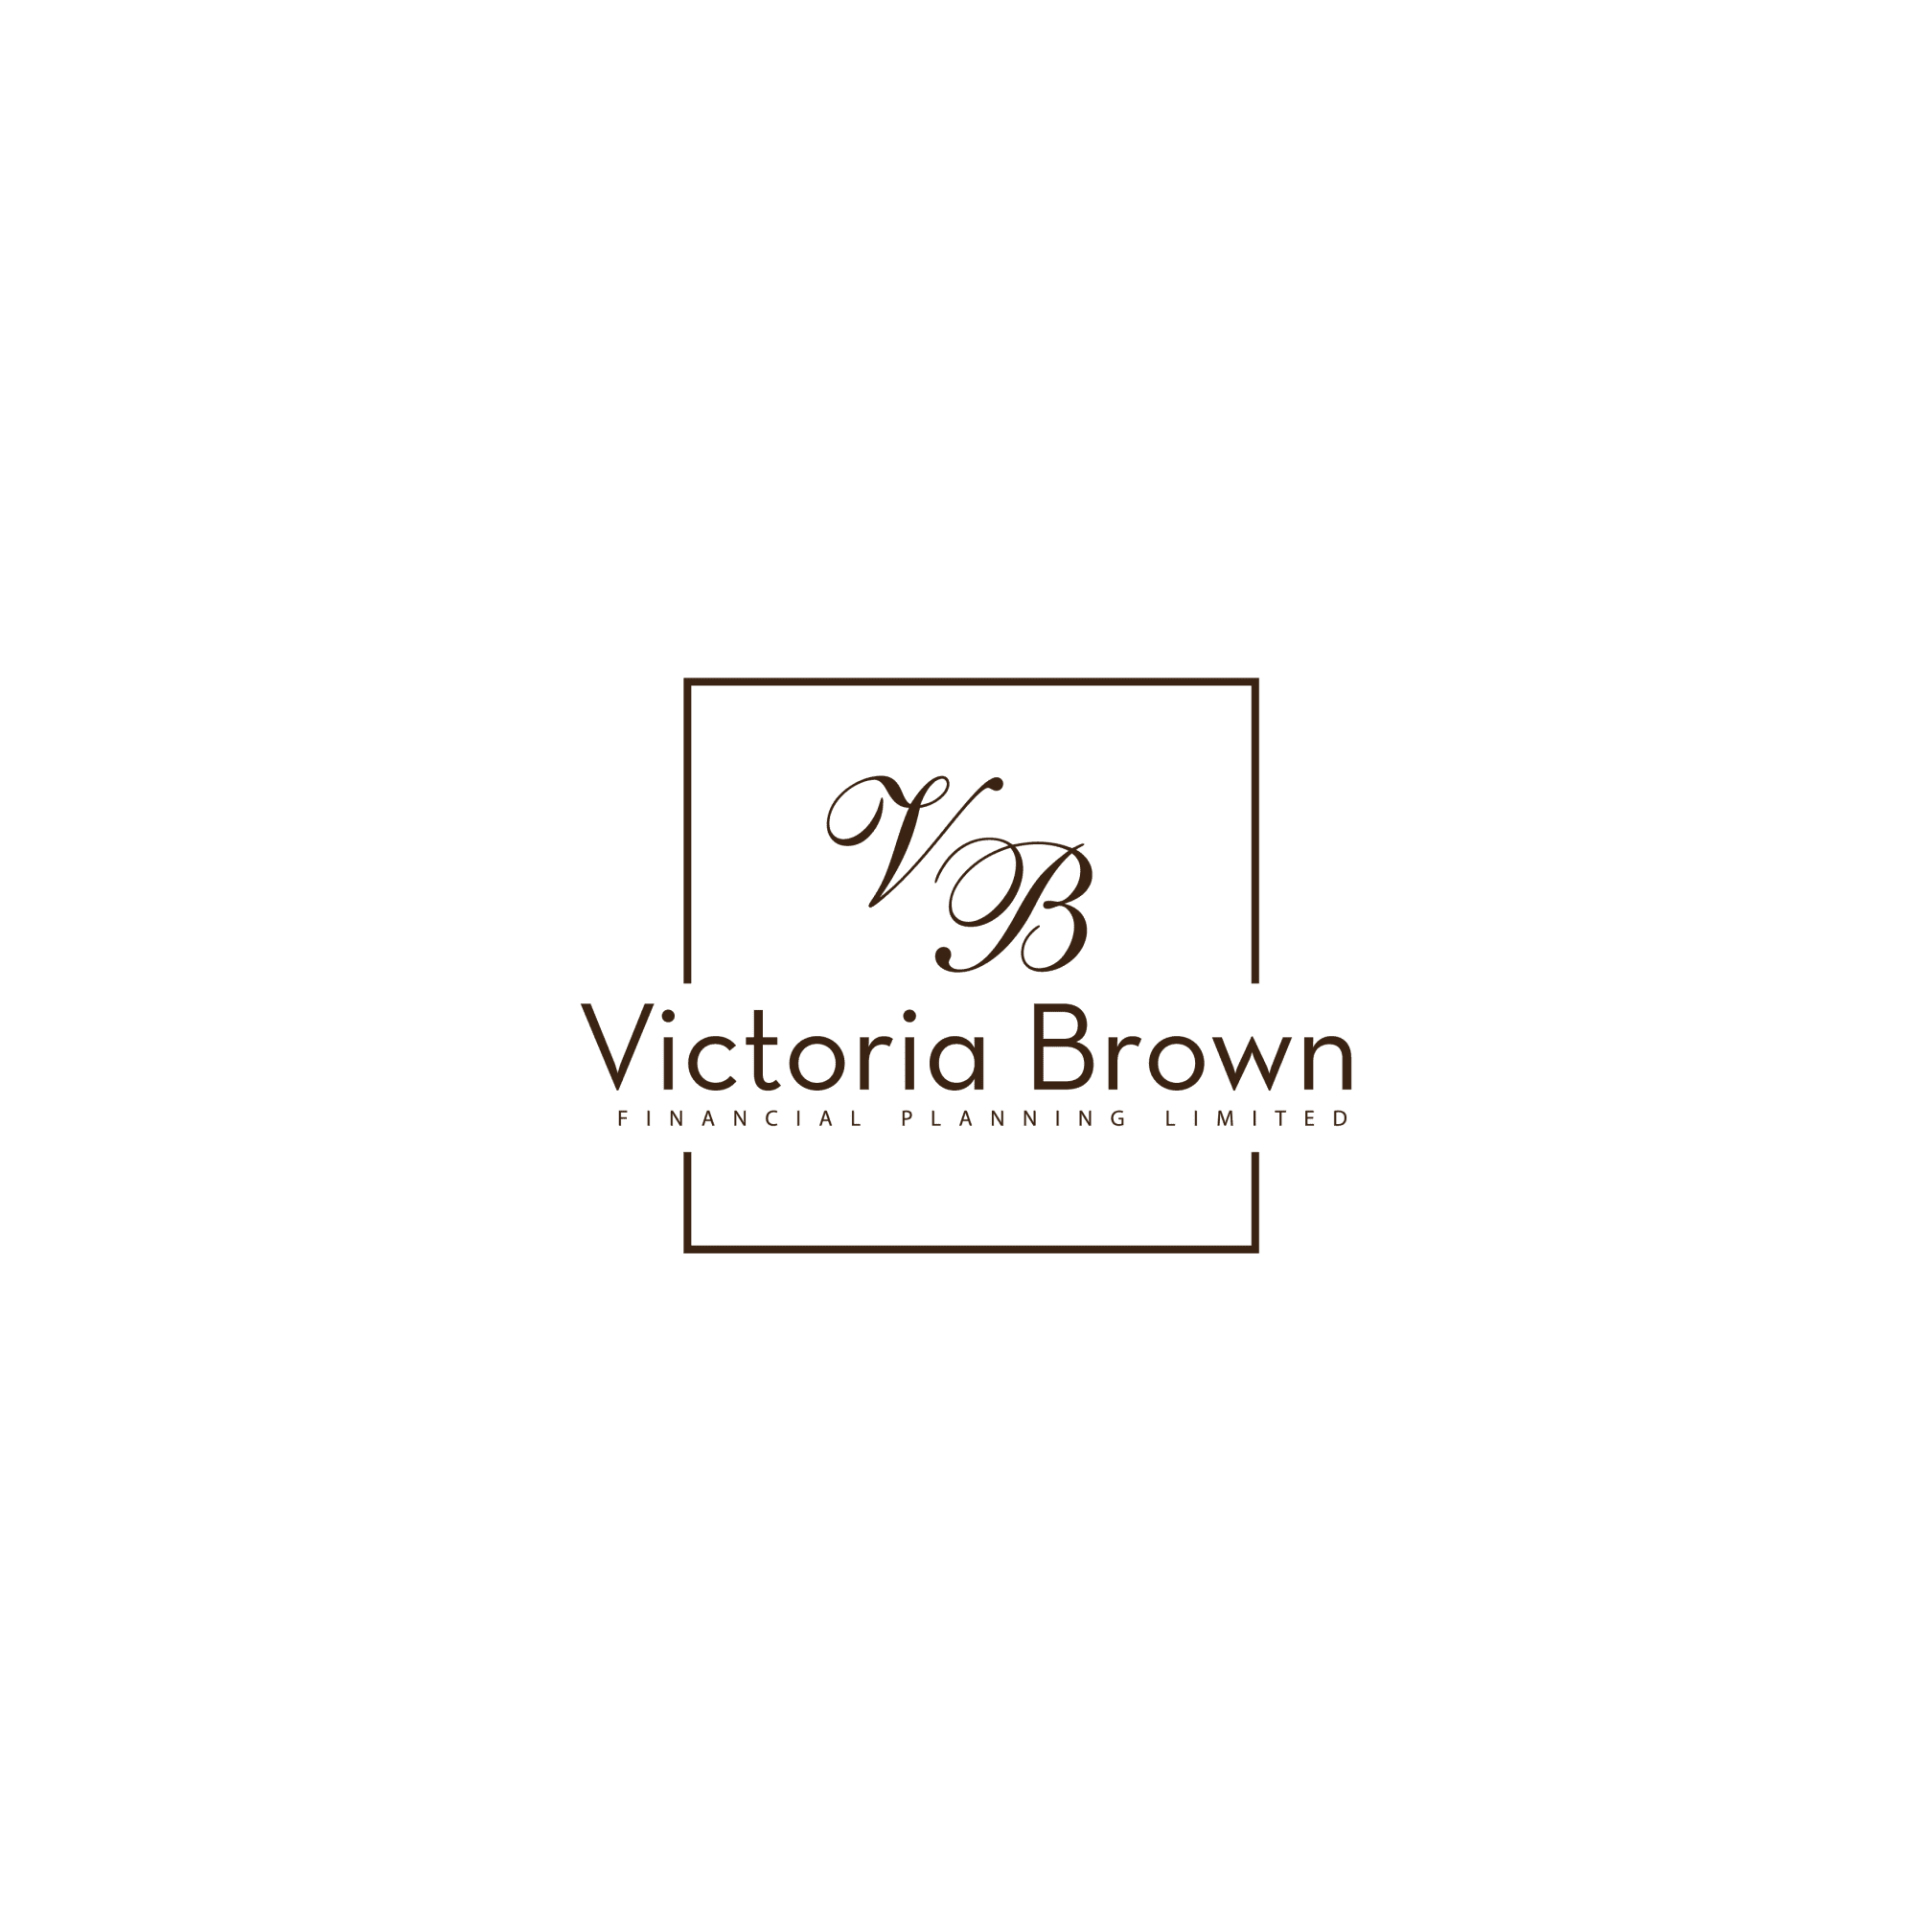 Victoria Brown Financial Planning Ltd - Bridge Of Weir, Renfrewshire PA11 3PZ - 01505 851216 | ShowMeLocal.com